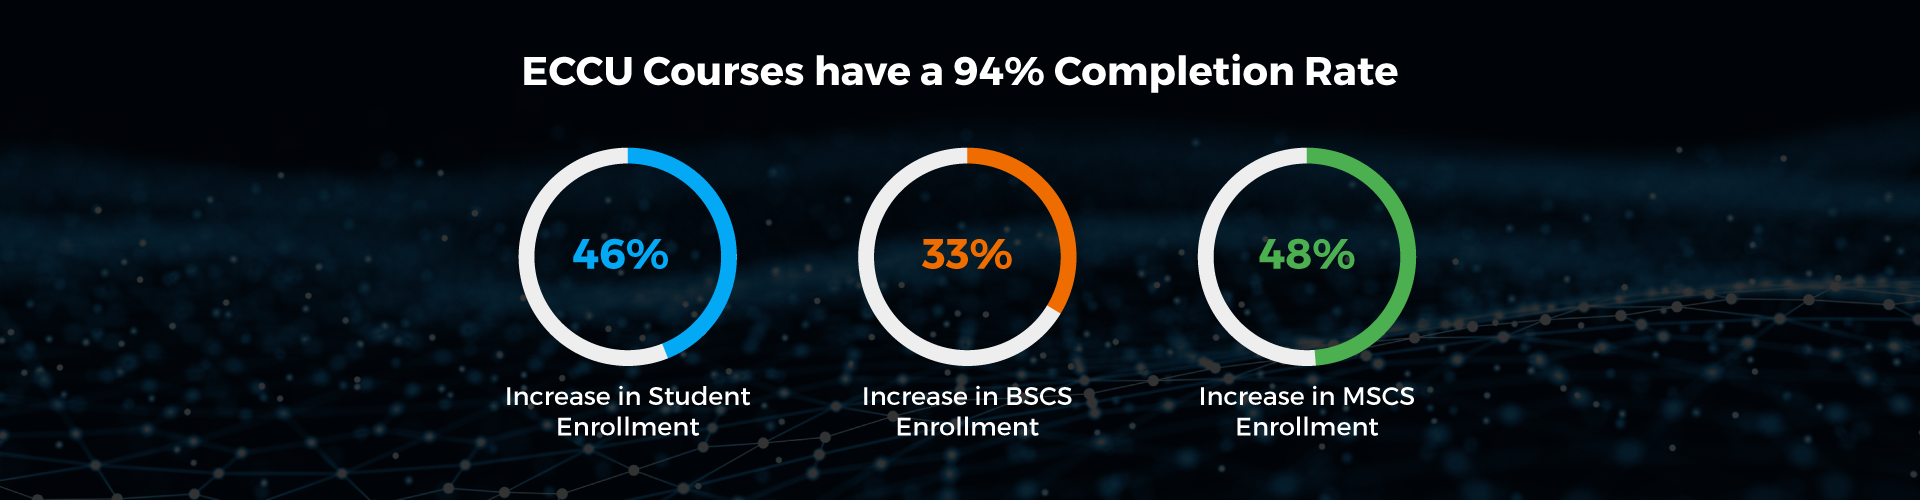 ECCU-Courses-have-a-94%-Completion-Rate